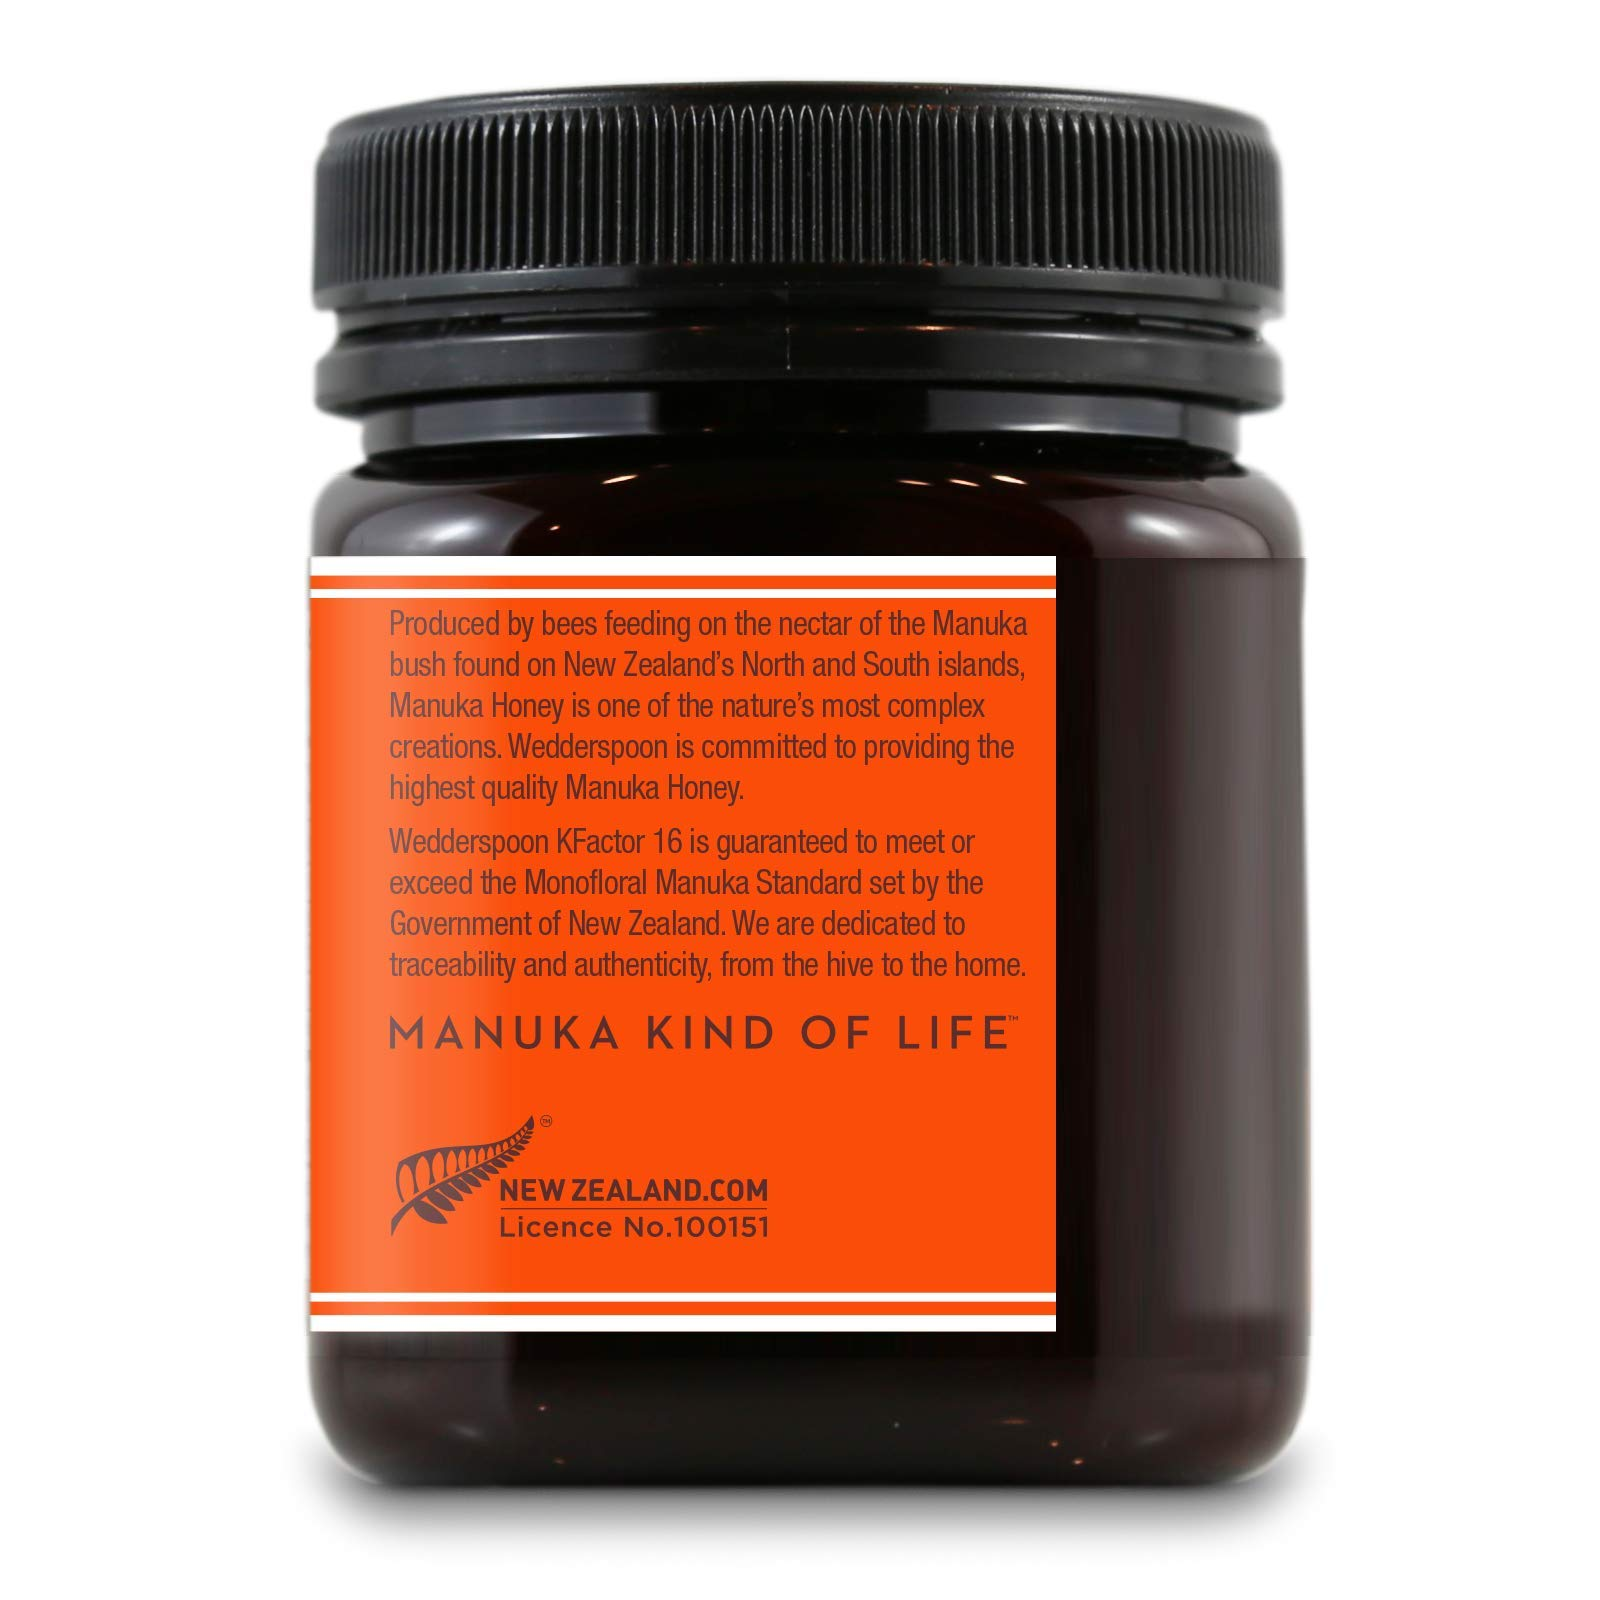 Wedderspoon Raw Premium Manuka Honey KFactor 16, 8.8 Oz, Unpasteurized, Genuine New Zealand Honey, Multi-Functional, Non-GMO Superfood by Wedderspoon (Image #3)